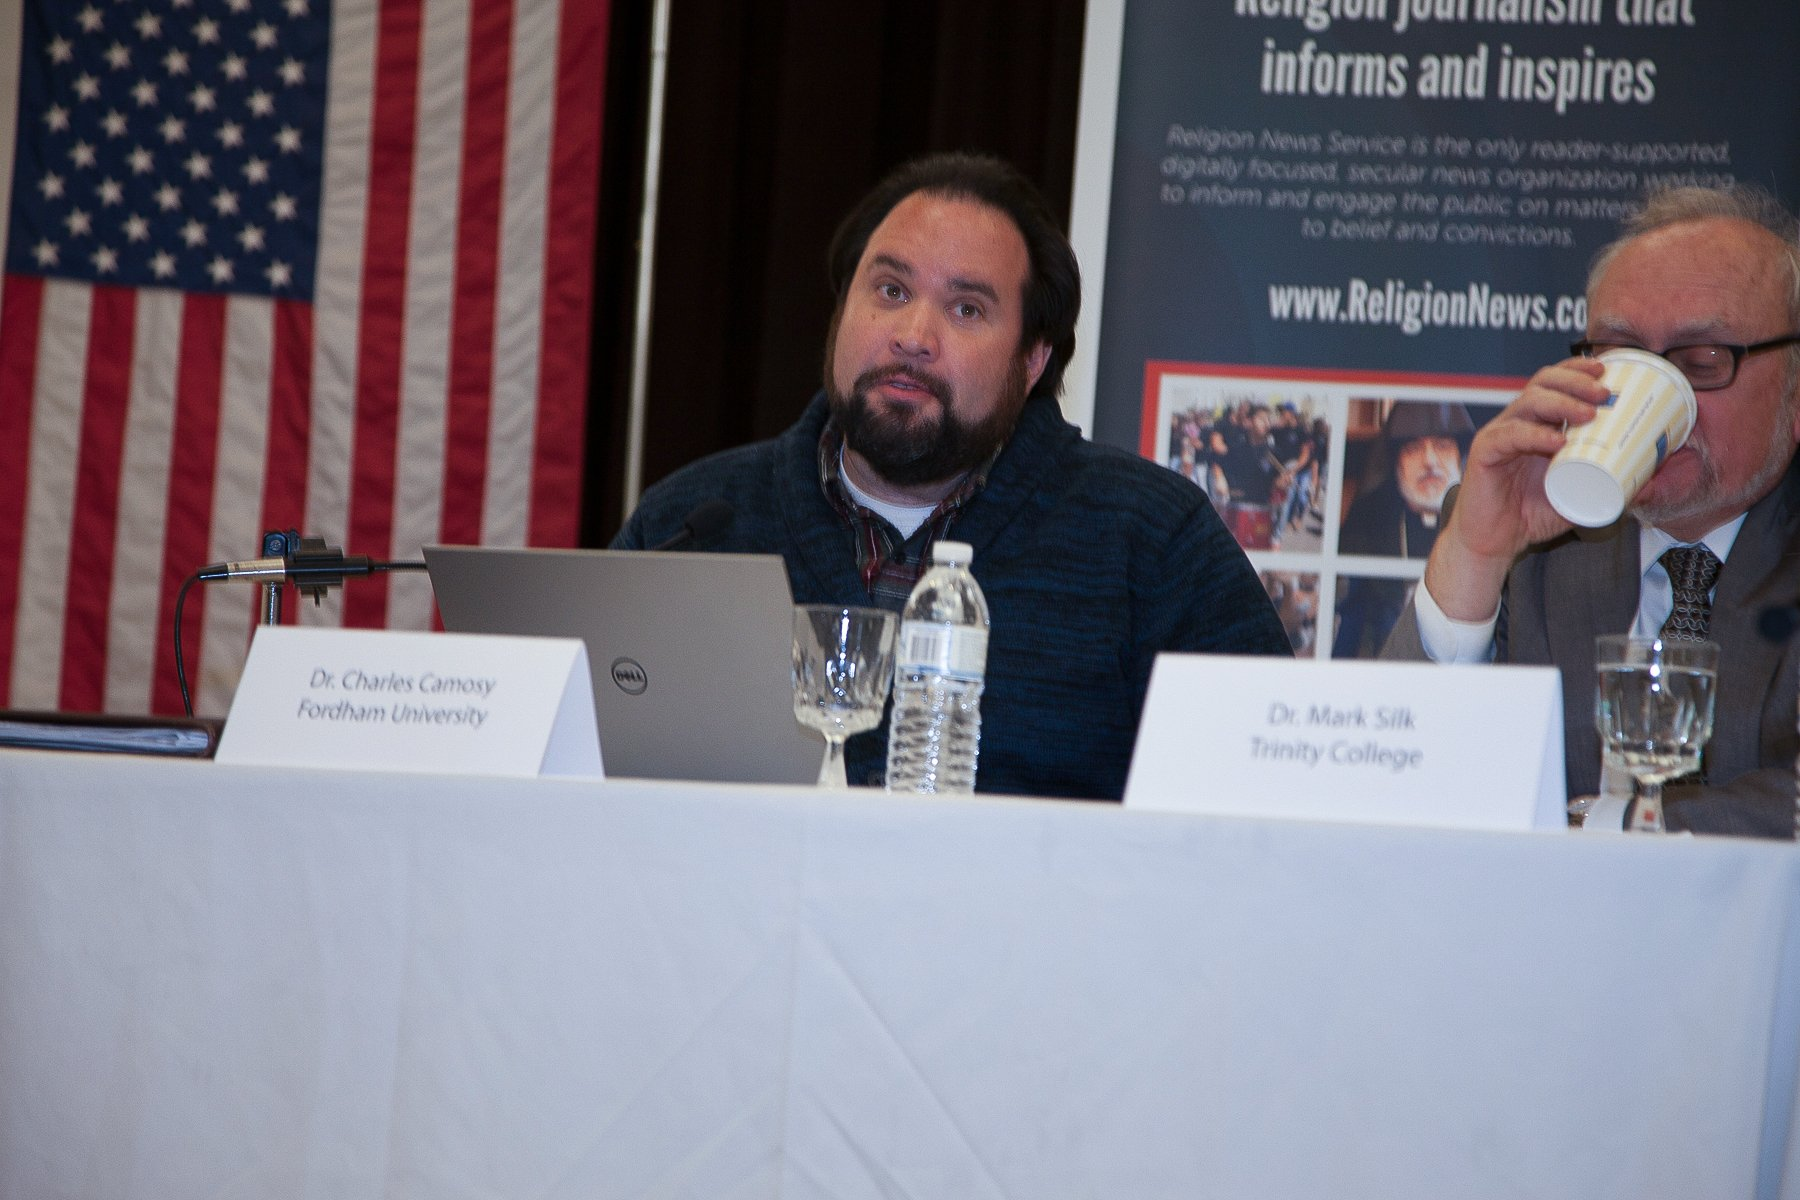 """L-R Professor Charlie Camosy offers a response during the """"Election Aftermath: Faith & the Common Good"""" expert panel discussion, held on Dec. 7, 2016, at St. Catherine of Siena Parish, Riverside, Conn., in front of an audience of some 200 people."""